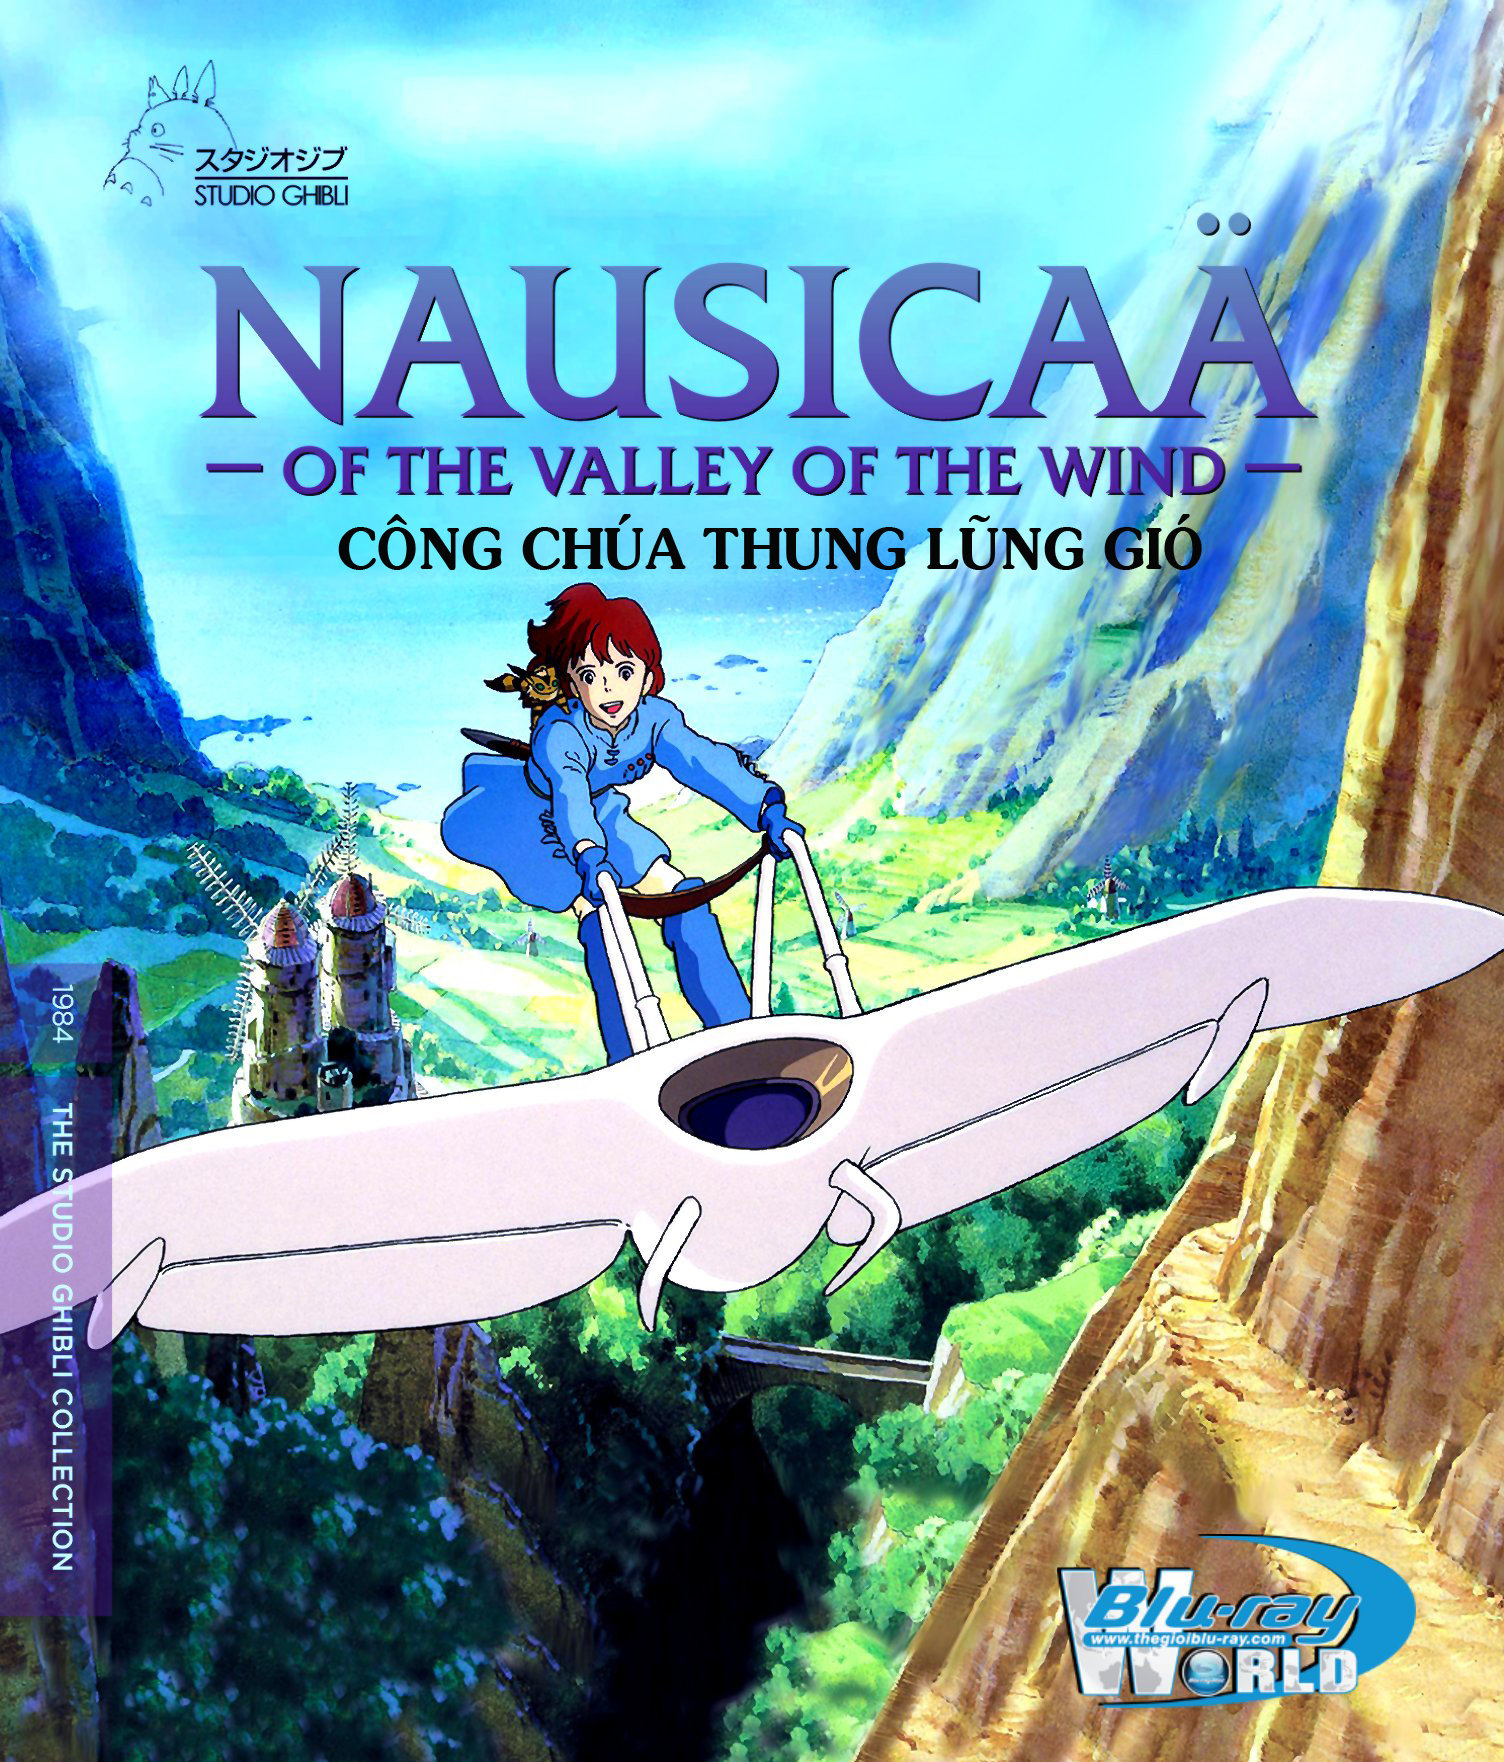 B1525. Nausicaa of the Valley of the Wind 1984 - CÔNG CHÚA THUNG LŨNG GIÓ 2D25G (DTS-HD MA 5.1) Studio Ghibli